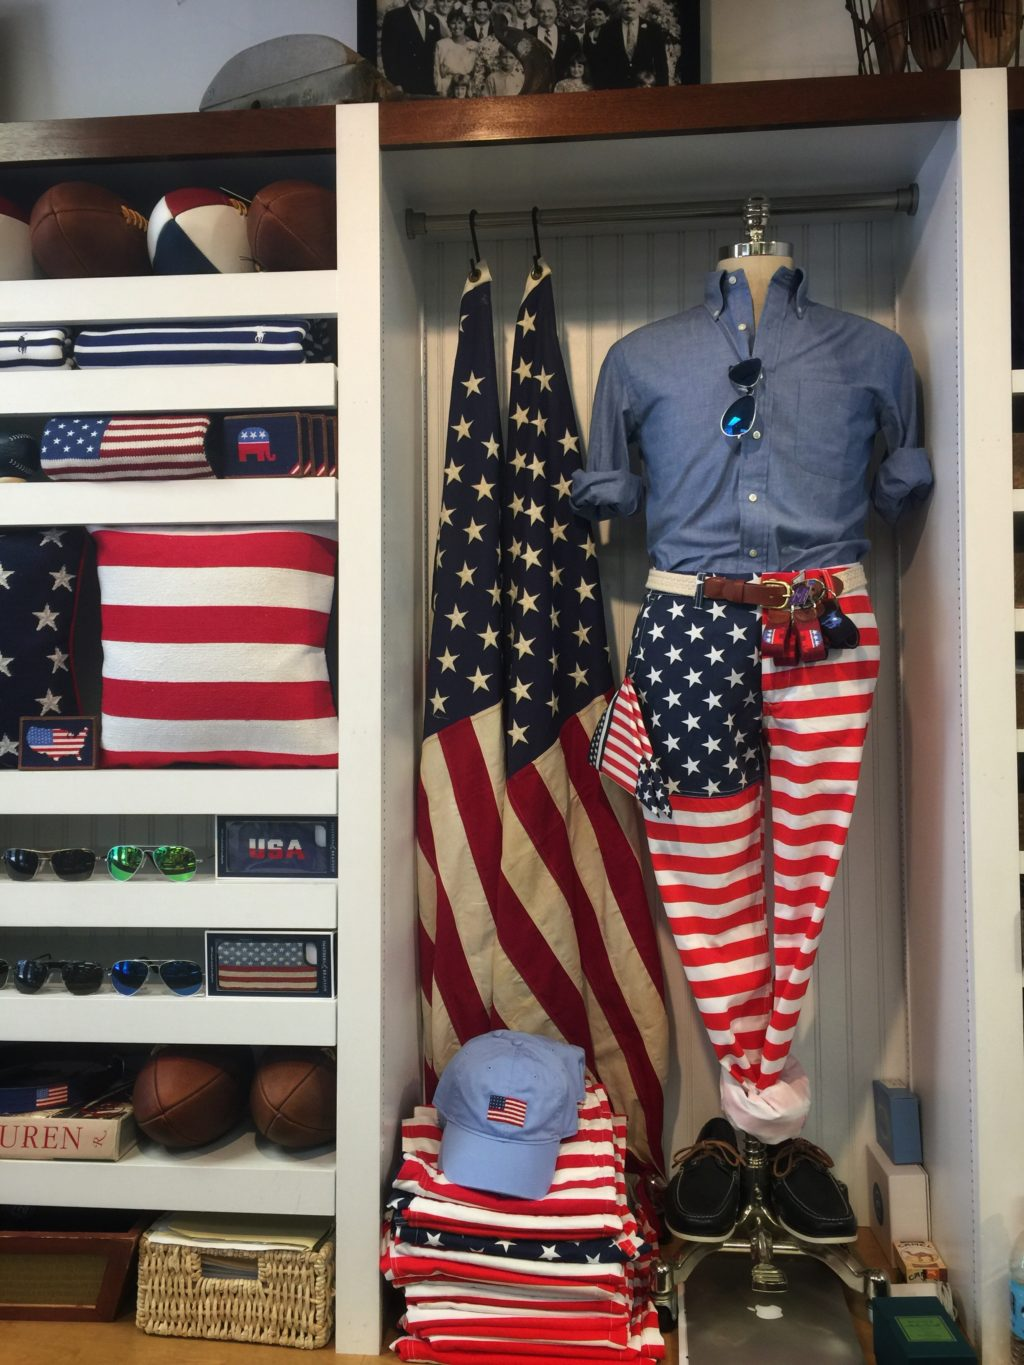 Murray's Toggery Shop in Sconcet Nantucket